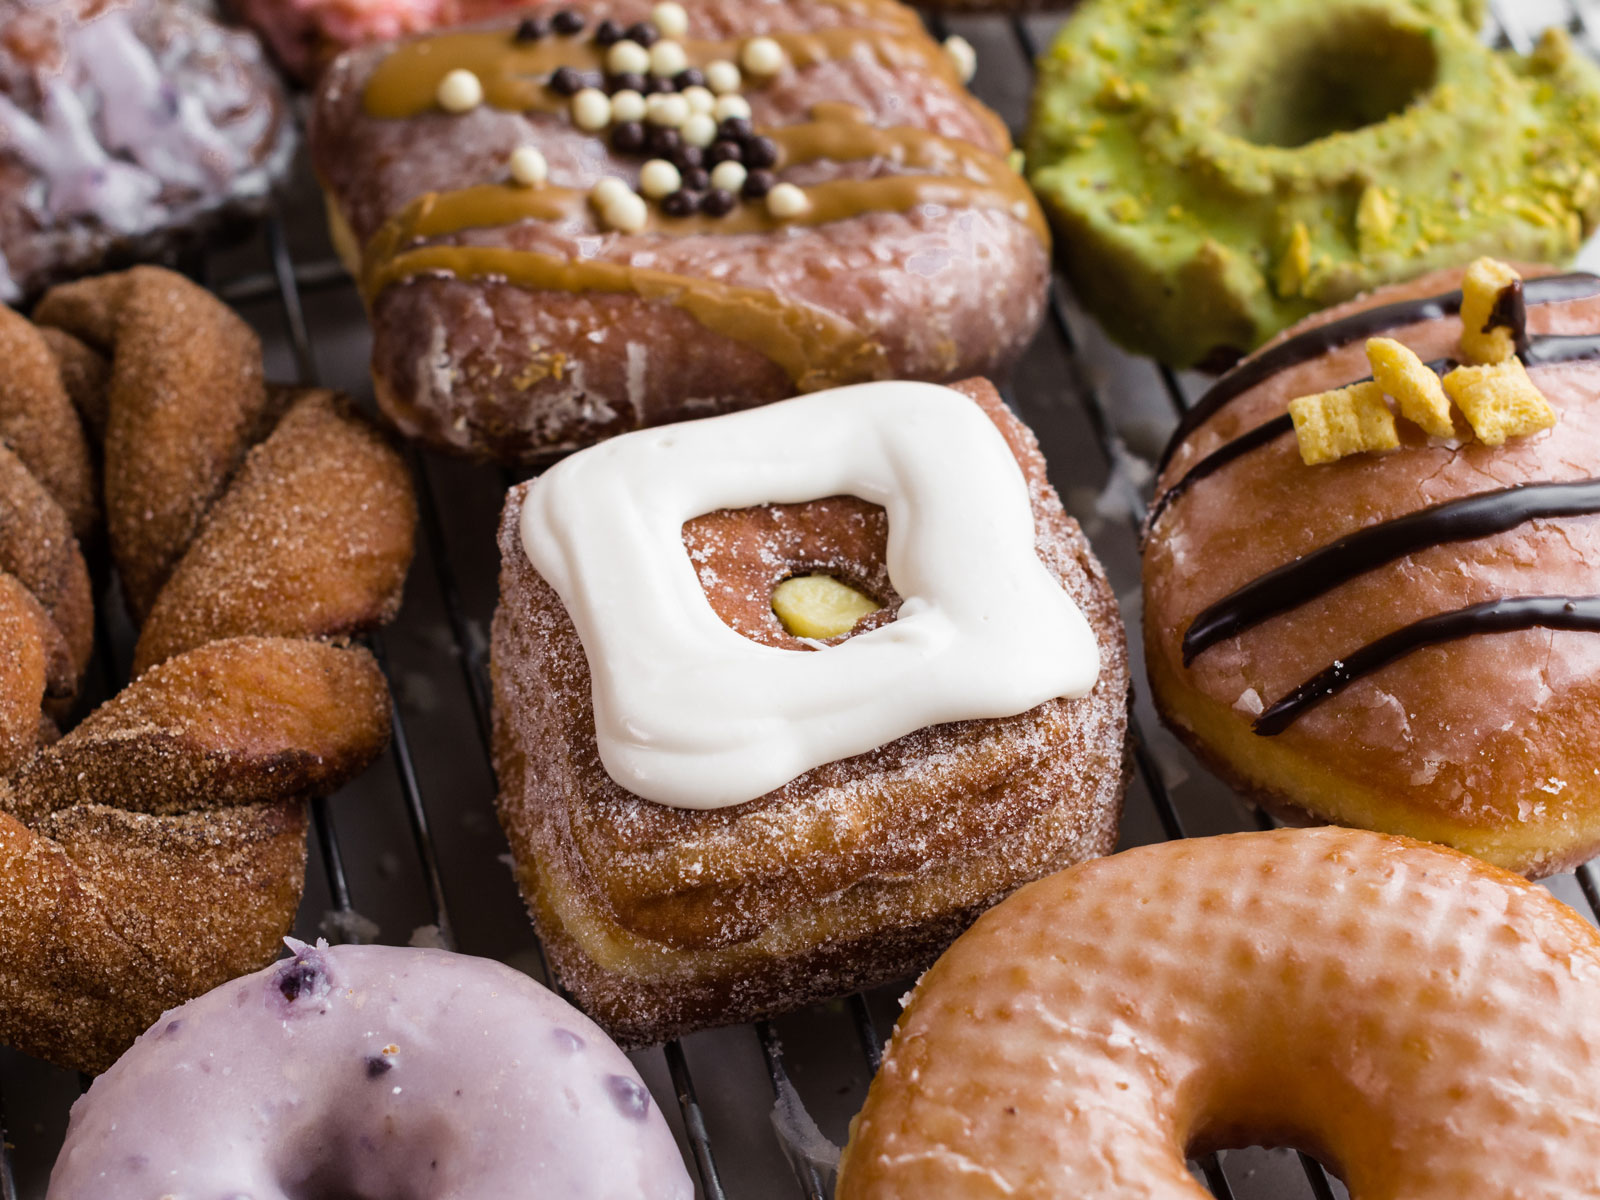 National Donut Day Deals: Where to Get Free Food and Other Discounts